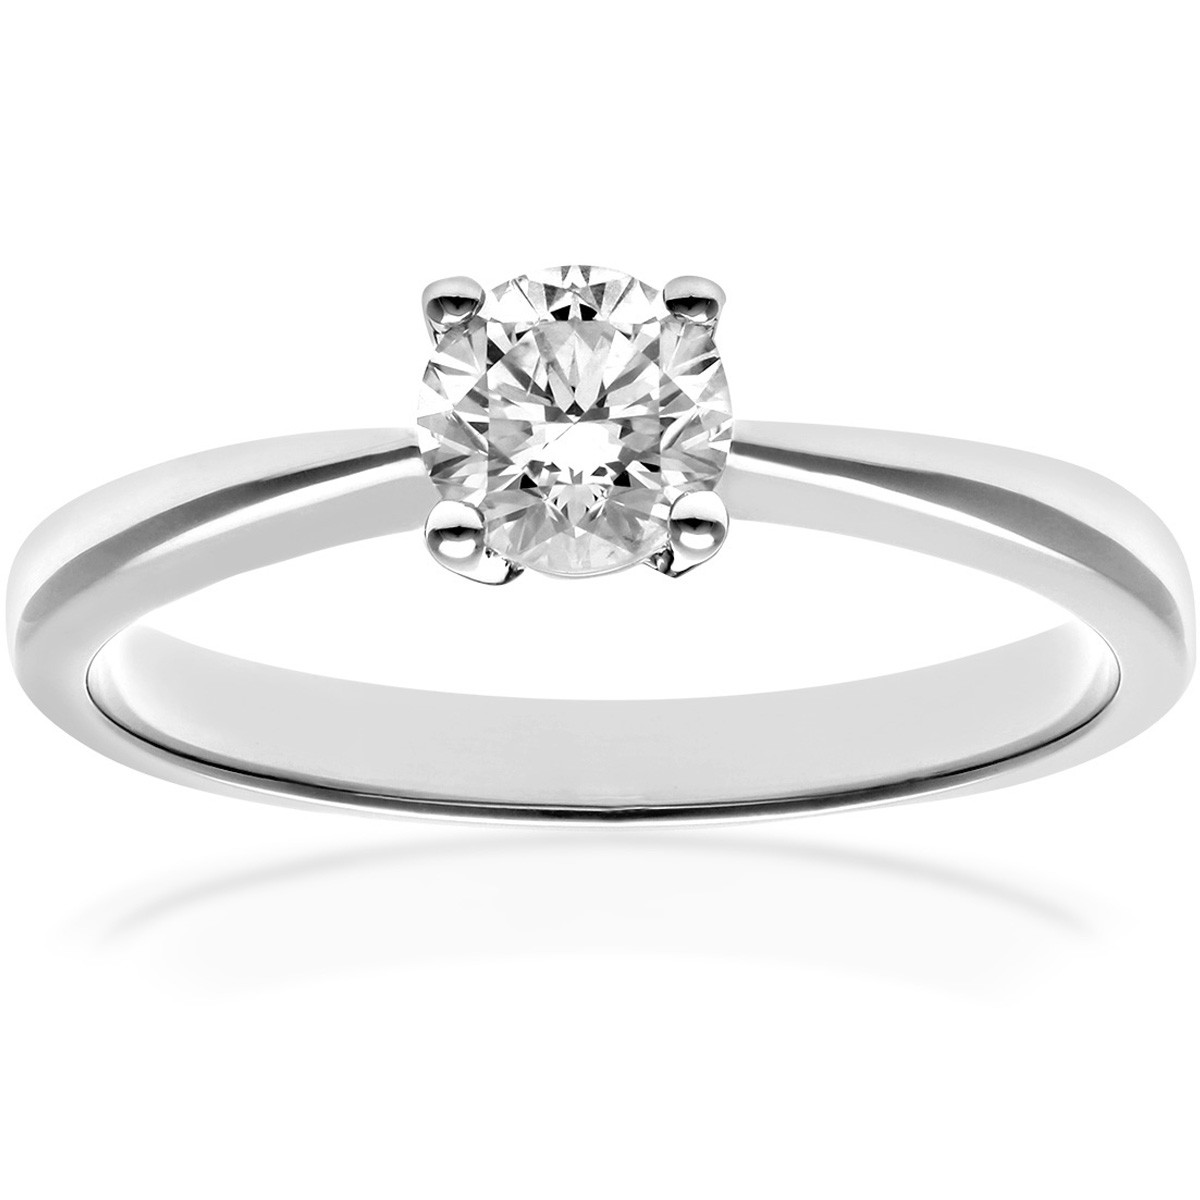 18CT WHITE GOLD 0.50CT DIAMOND SOLITAIRE RING